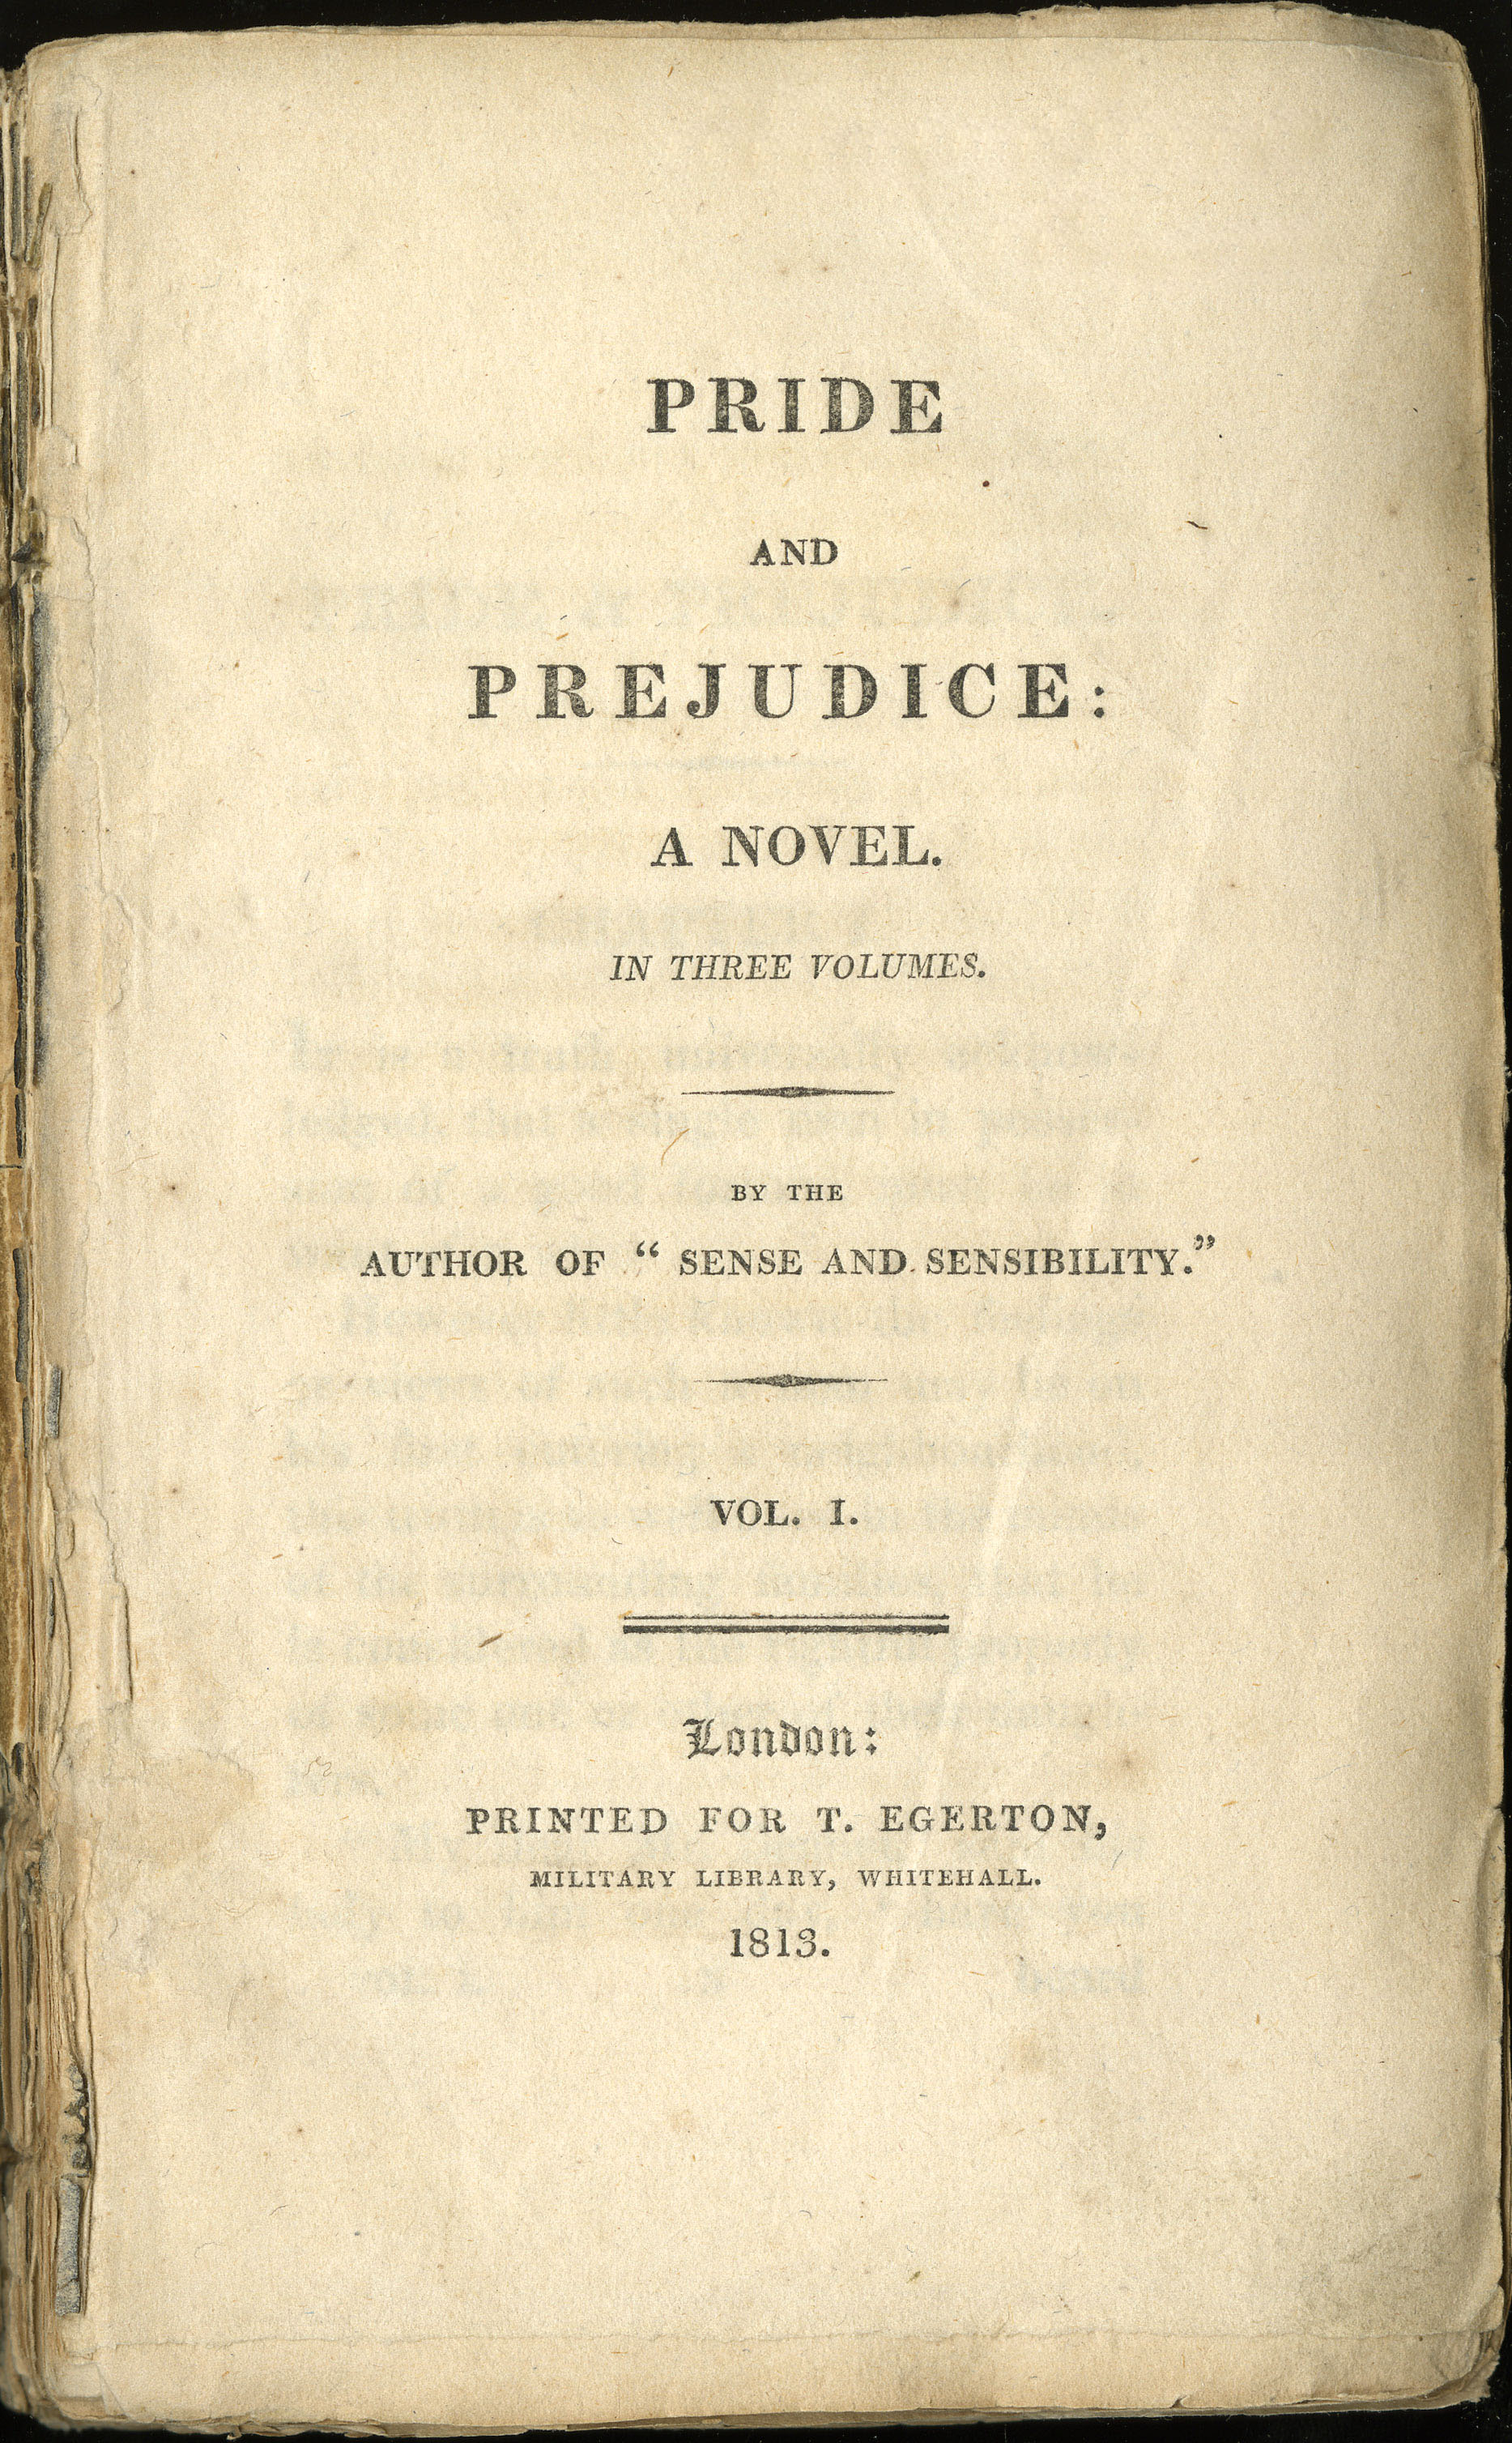 Title page for the first edition